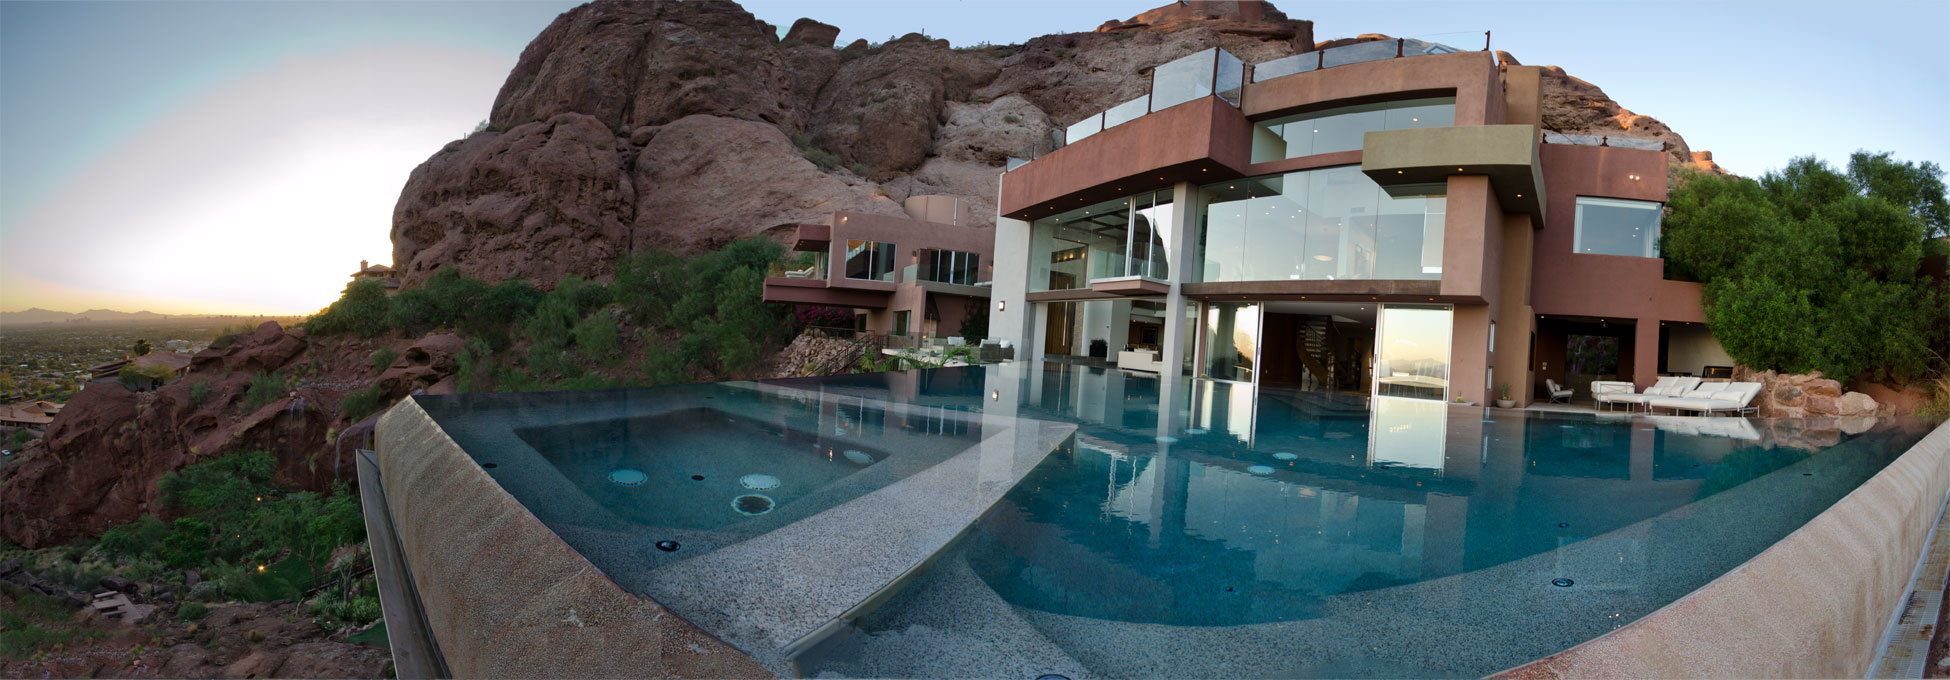 Most expensive bathrooms in the world - Pool_panorama Most Expensive Vacation Rentals In The World